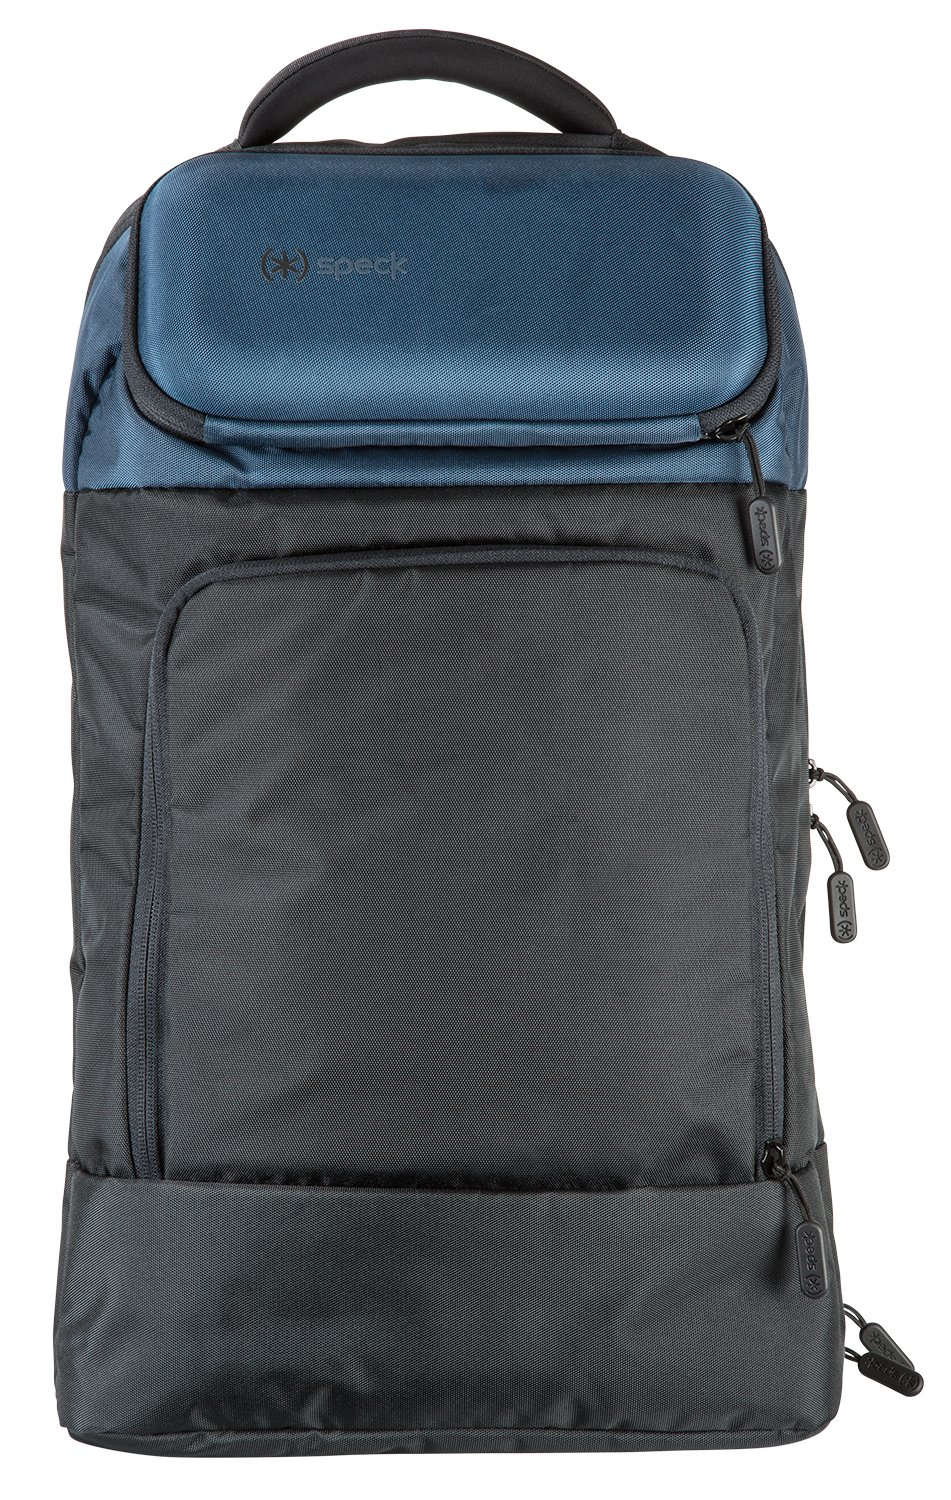 Speck Products Mighty Pack Plus Checkpoint-Friendly Backpack for Laptops & Tablets up to 15''